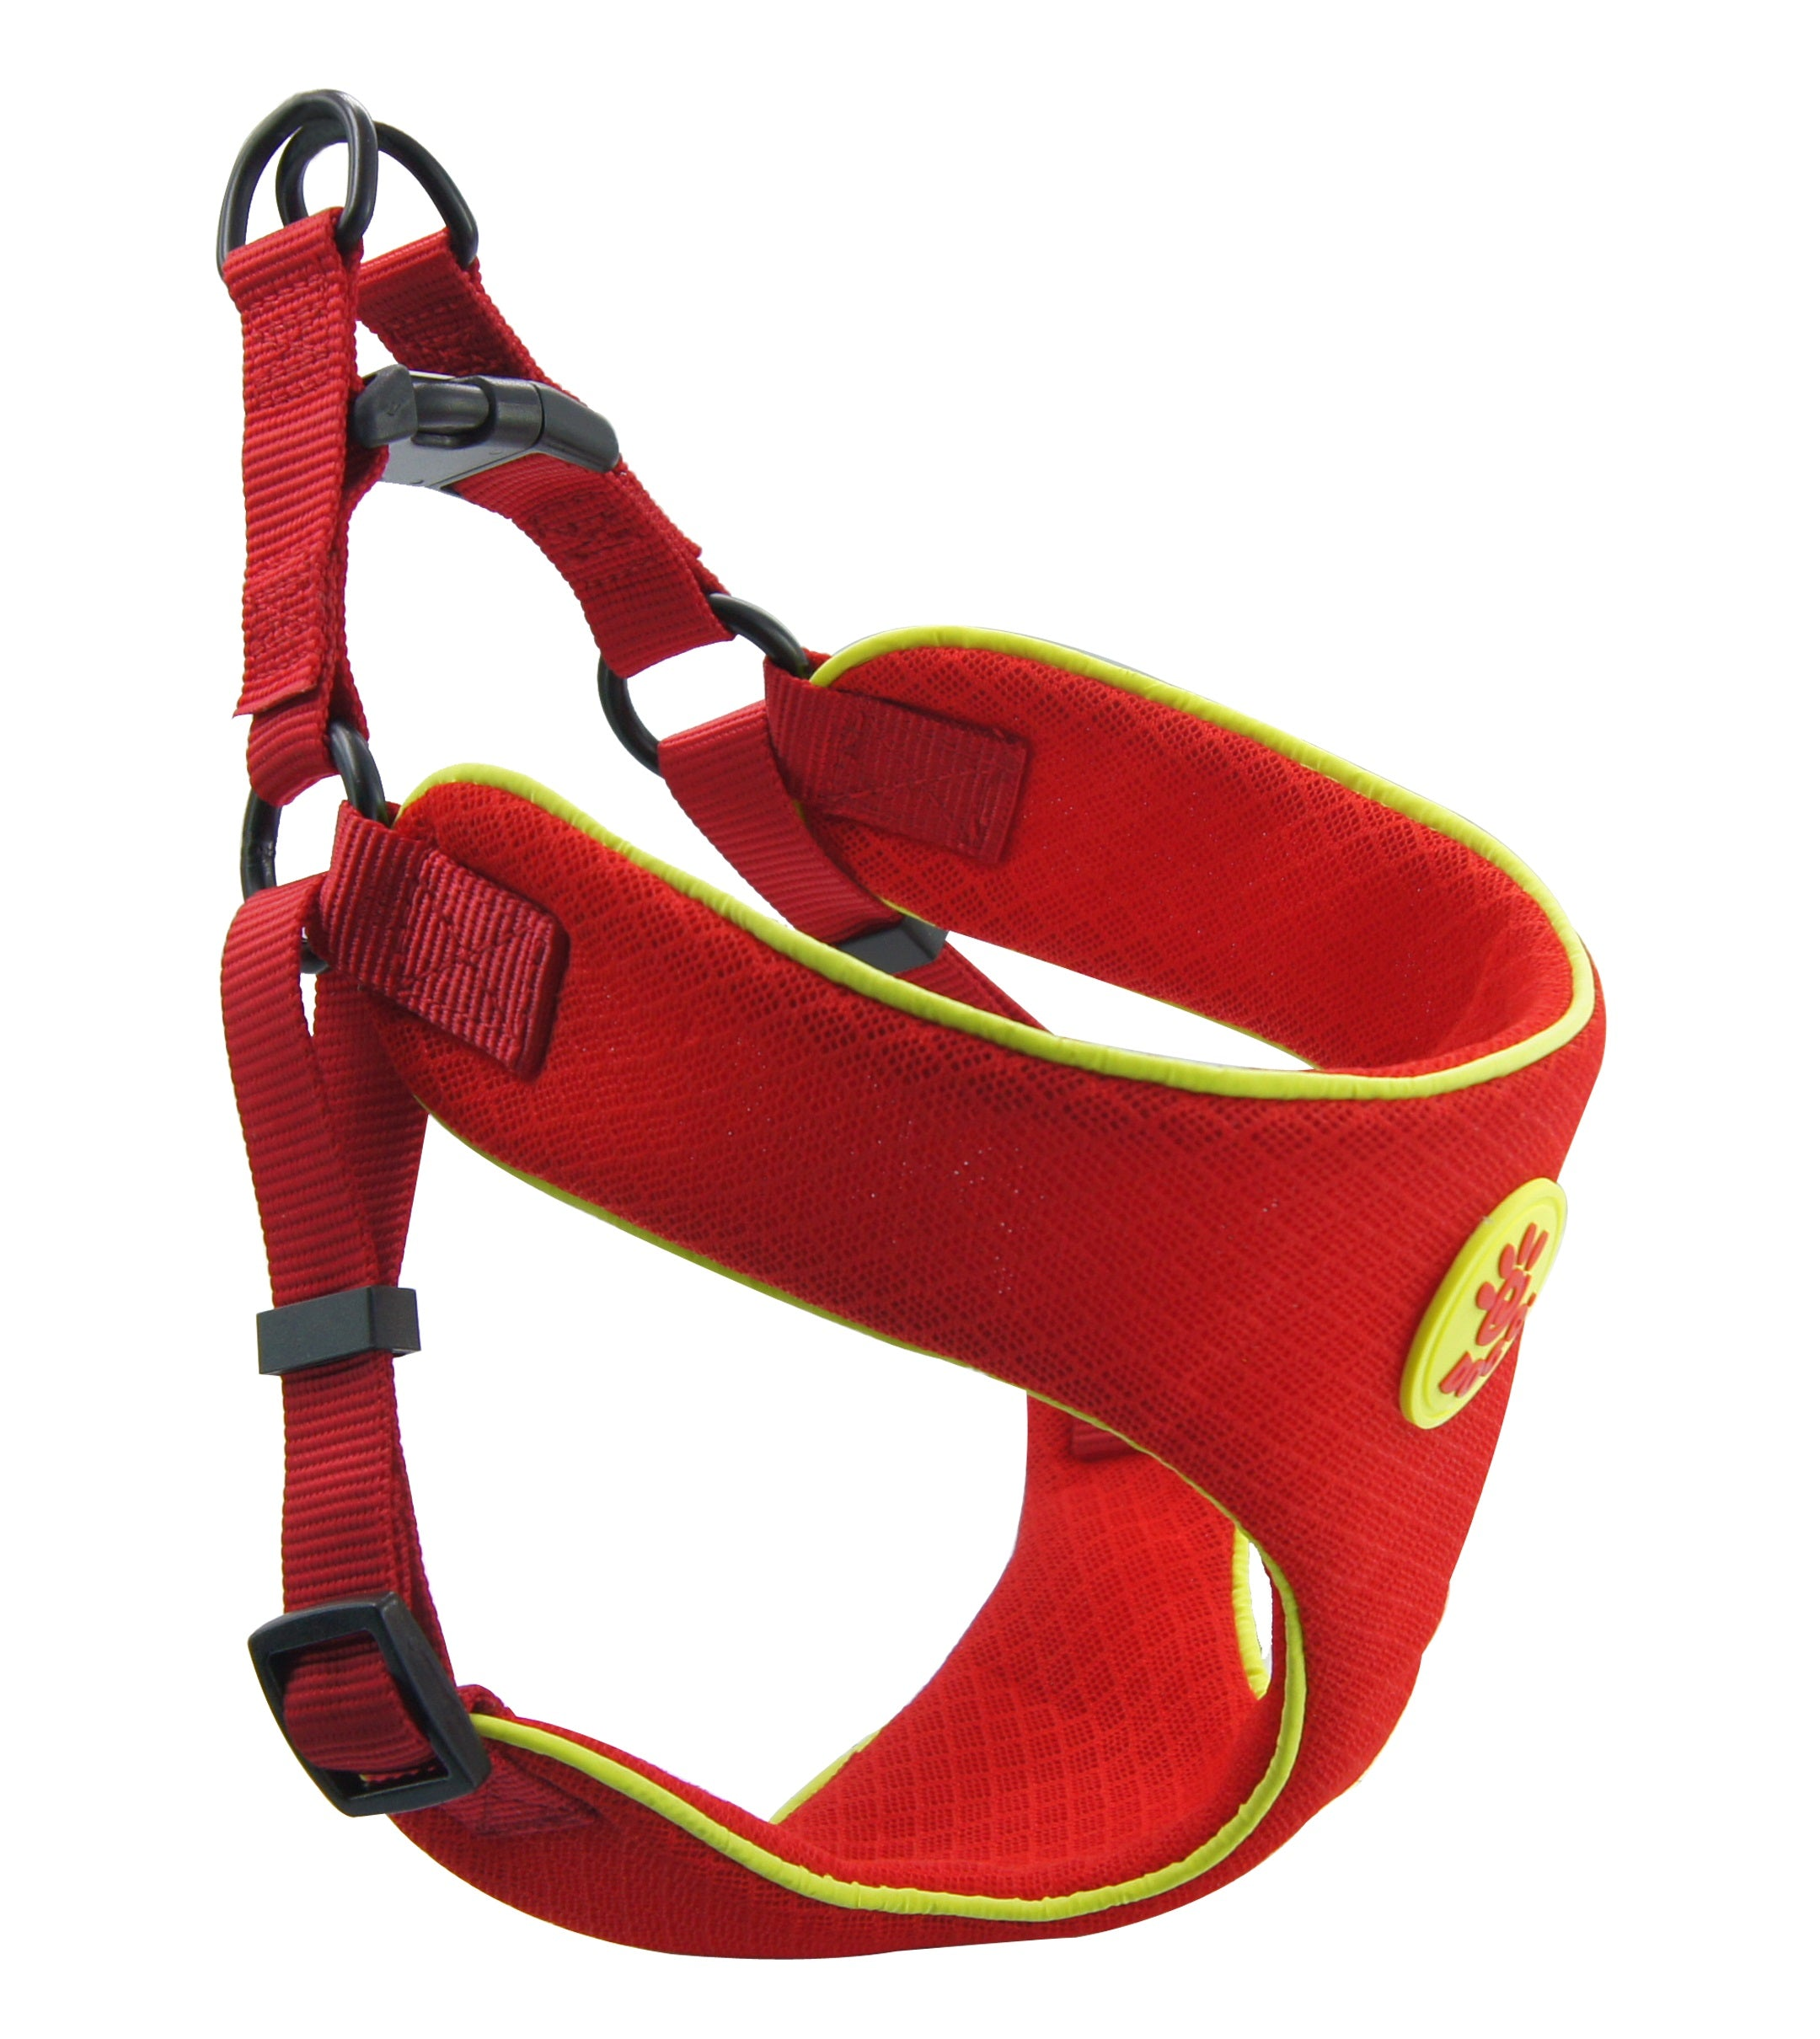 DOCO® Athletica RUNNER Mesh Harness Reflective - www.docopet.com